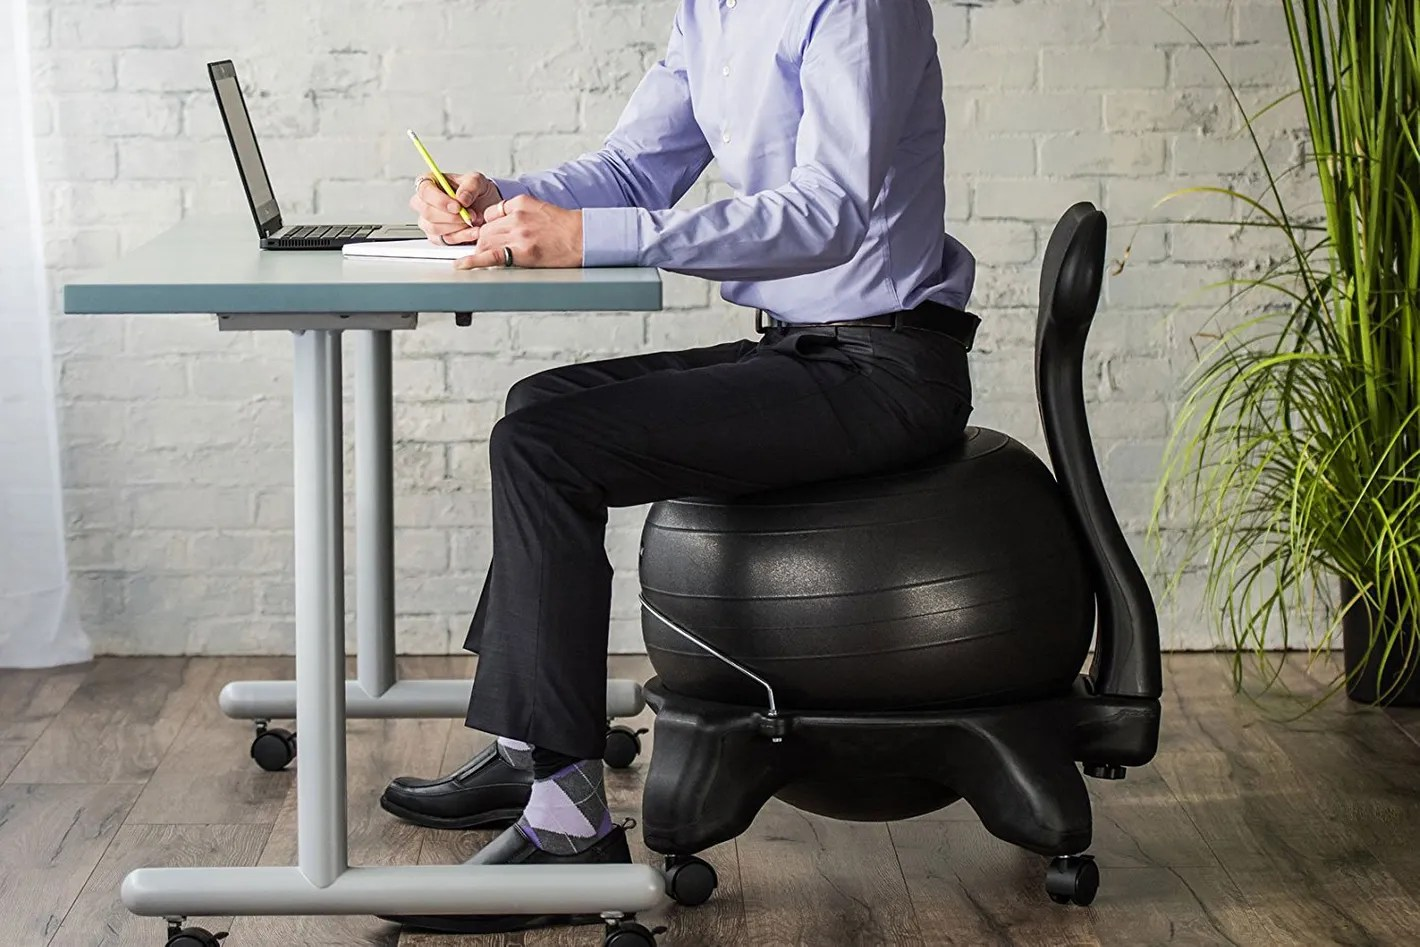 Yoga Ball Desk Chair Best Laptop Stands Ergonomic Desk Setups From Chiropractors